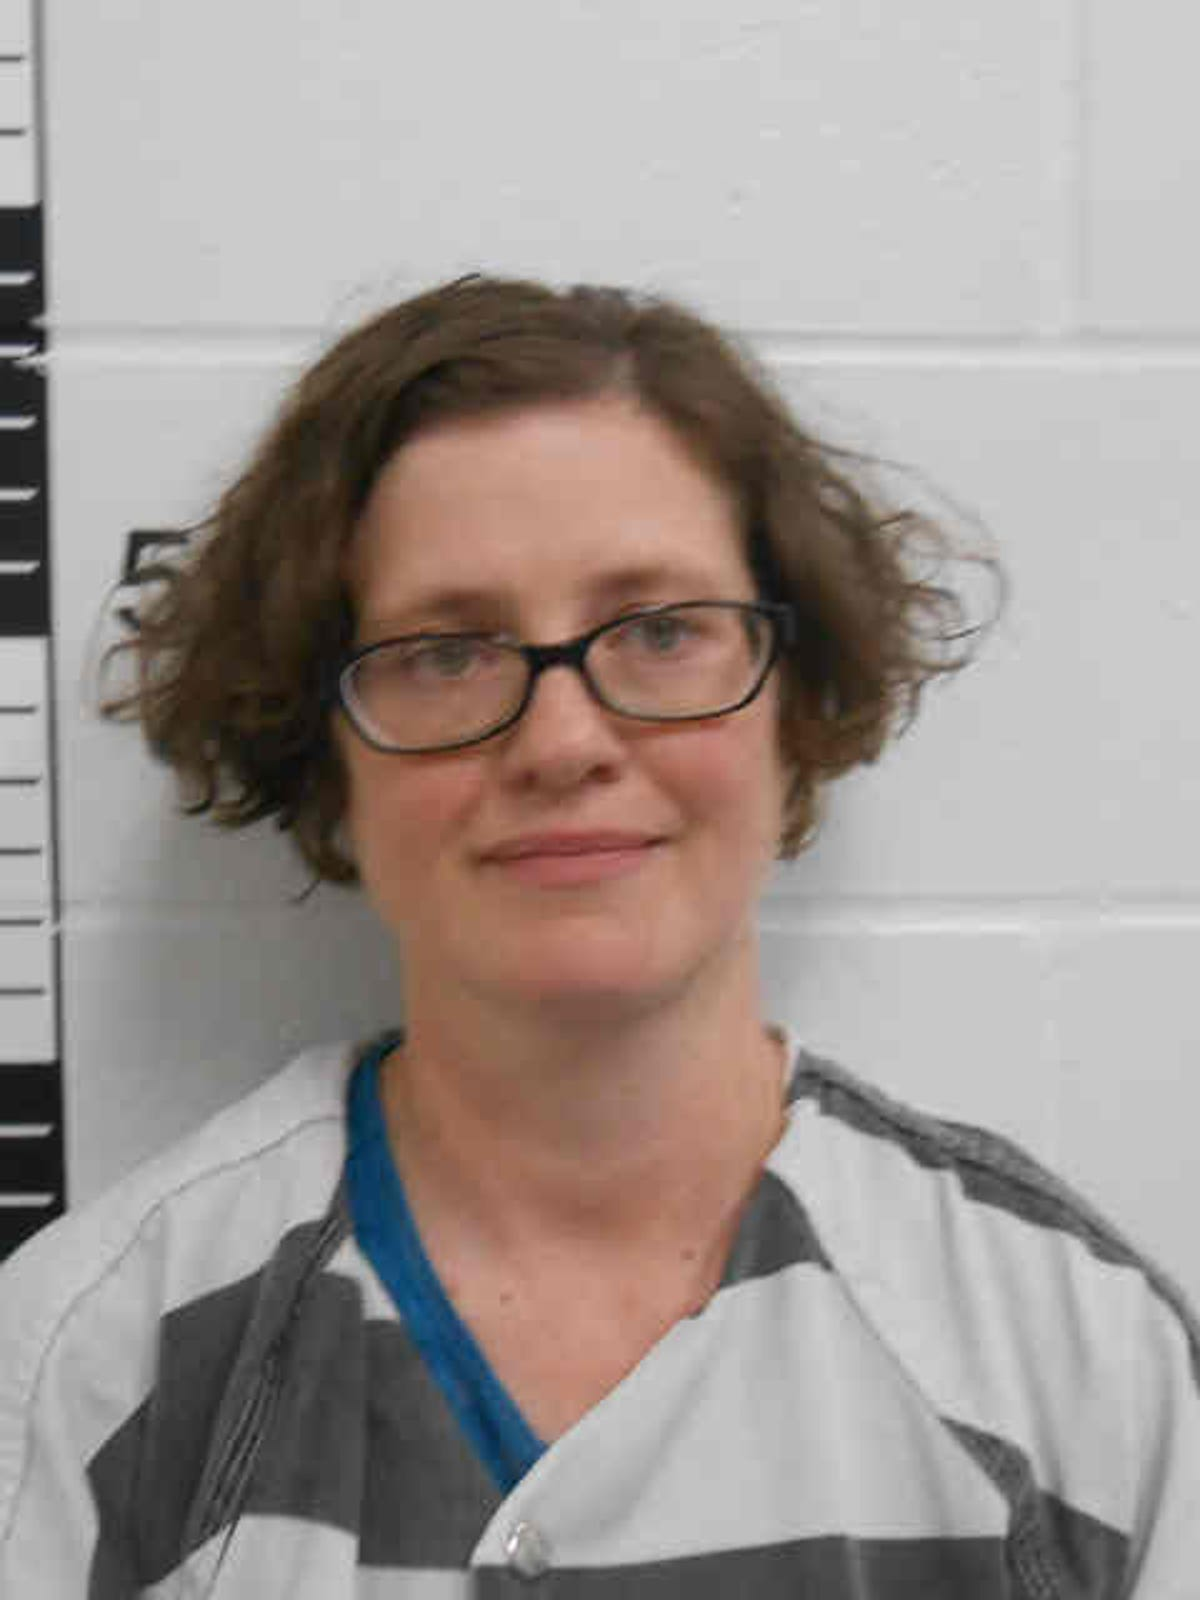 Clarke County Attorney Michelle Rivera arrested for OWI